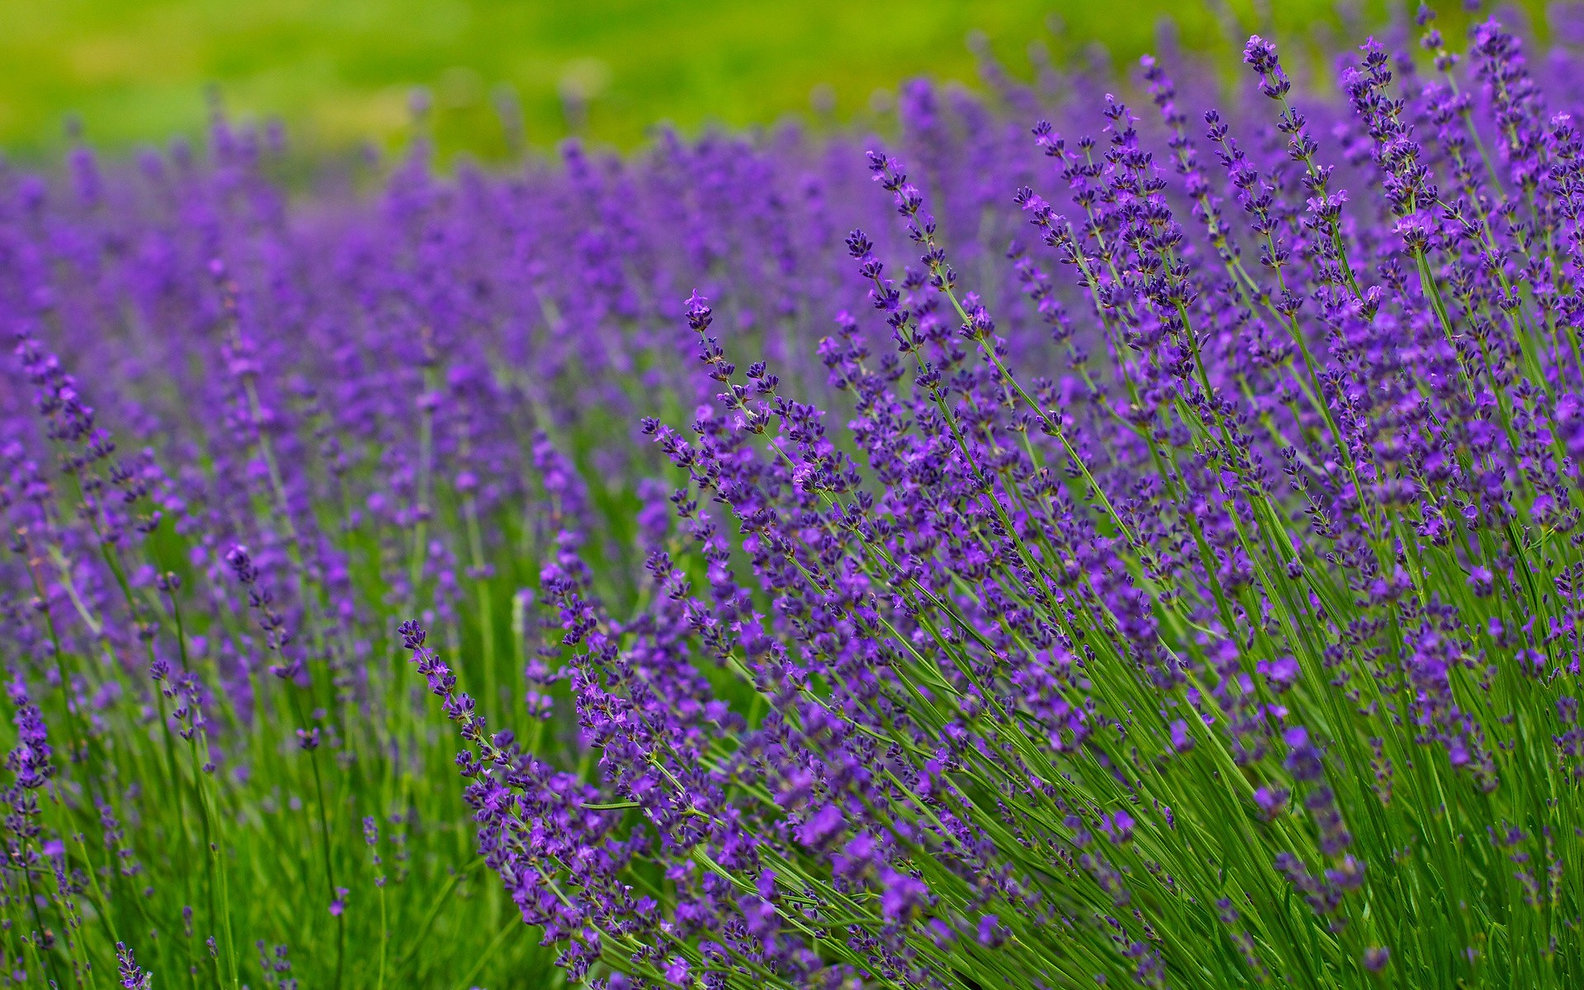 lavender and grass.jpg